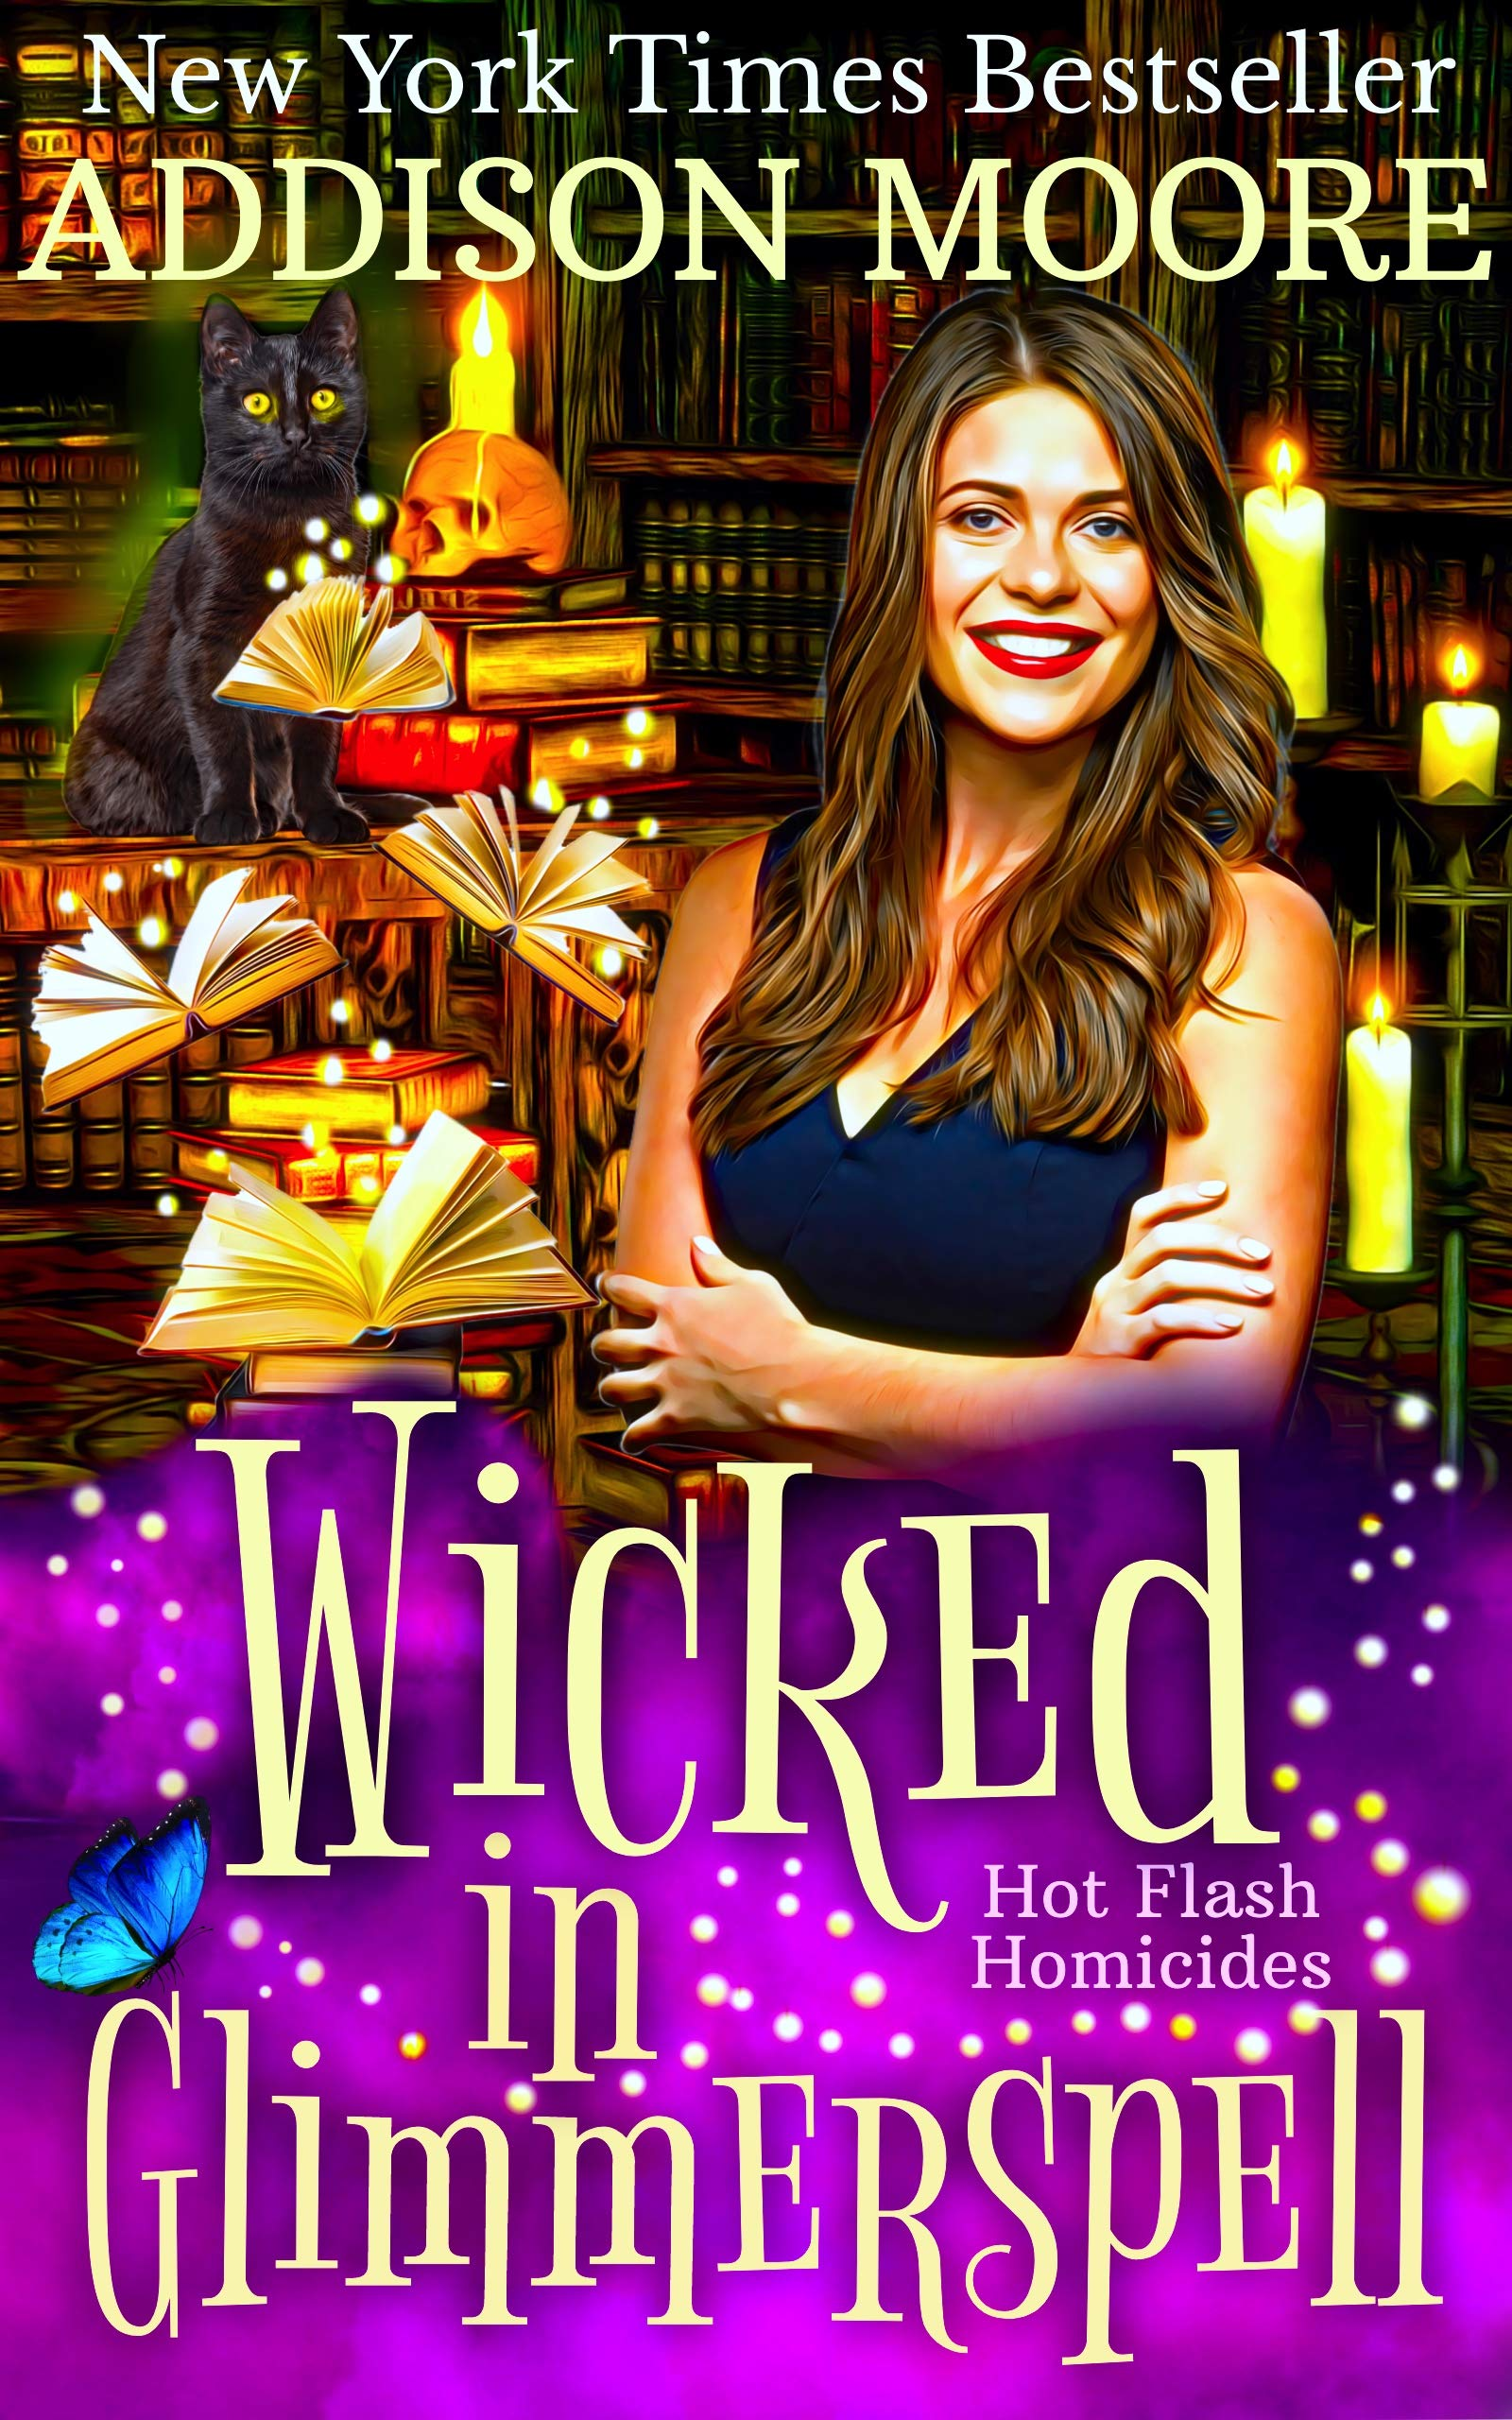 Wicked in Glimmerspell: A Paranormal Women's Fiction Novel (Hot Flash Homicides Book 2)